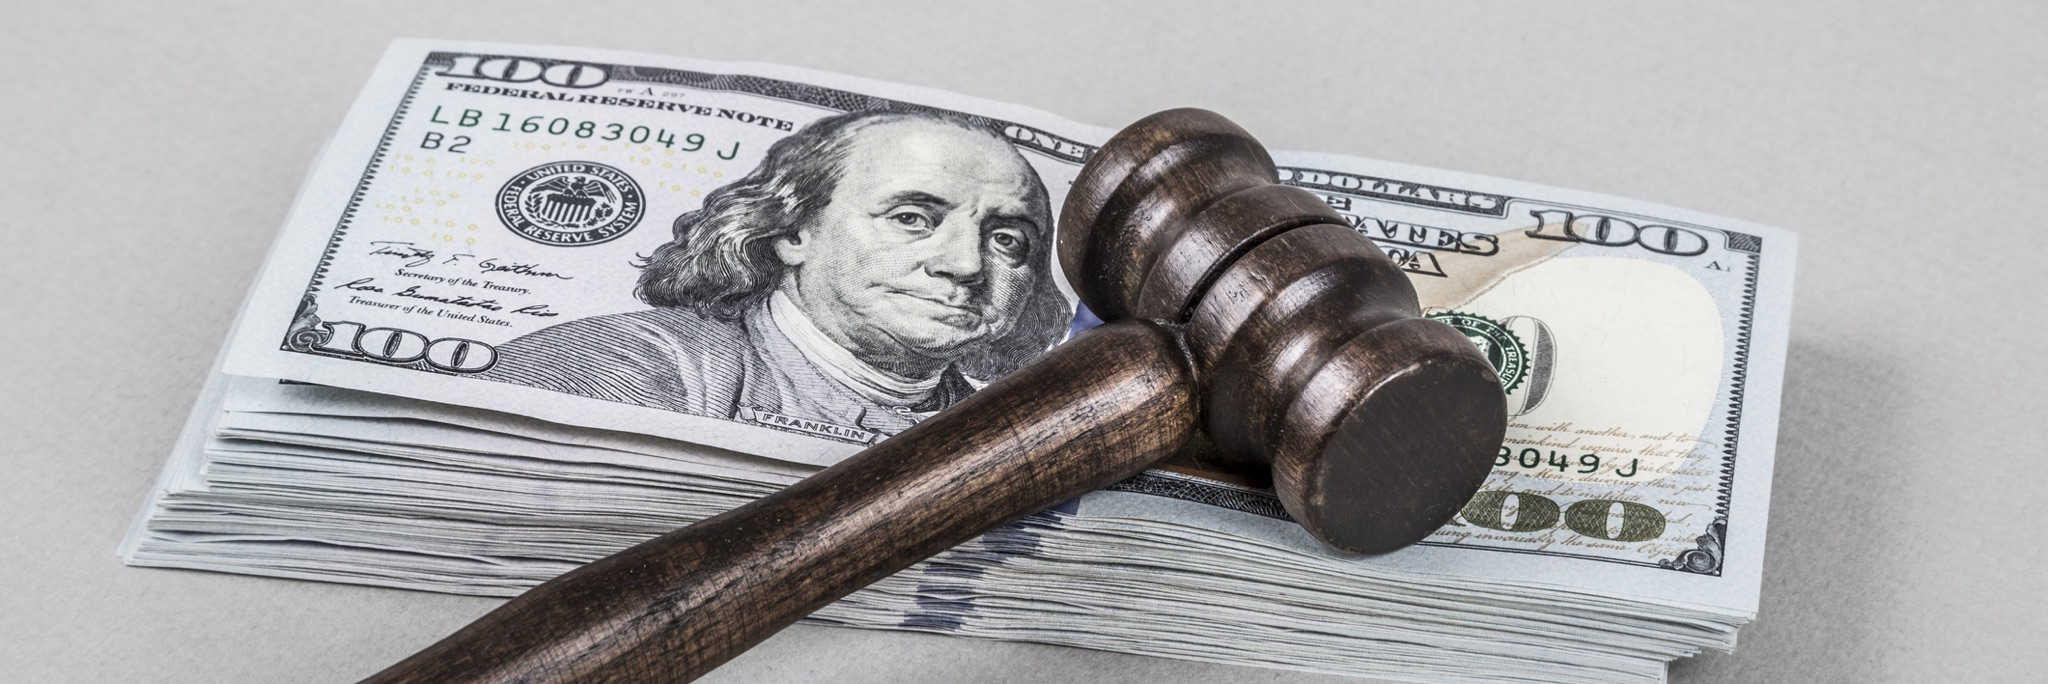 picture of money and gavel